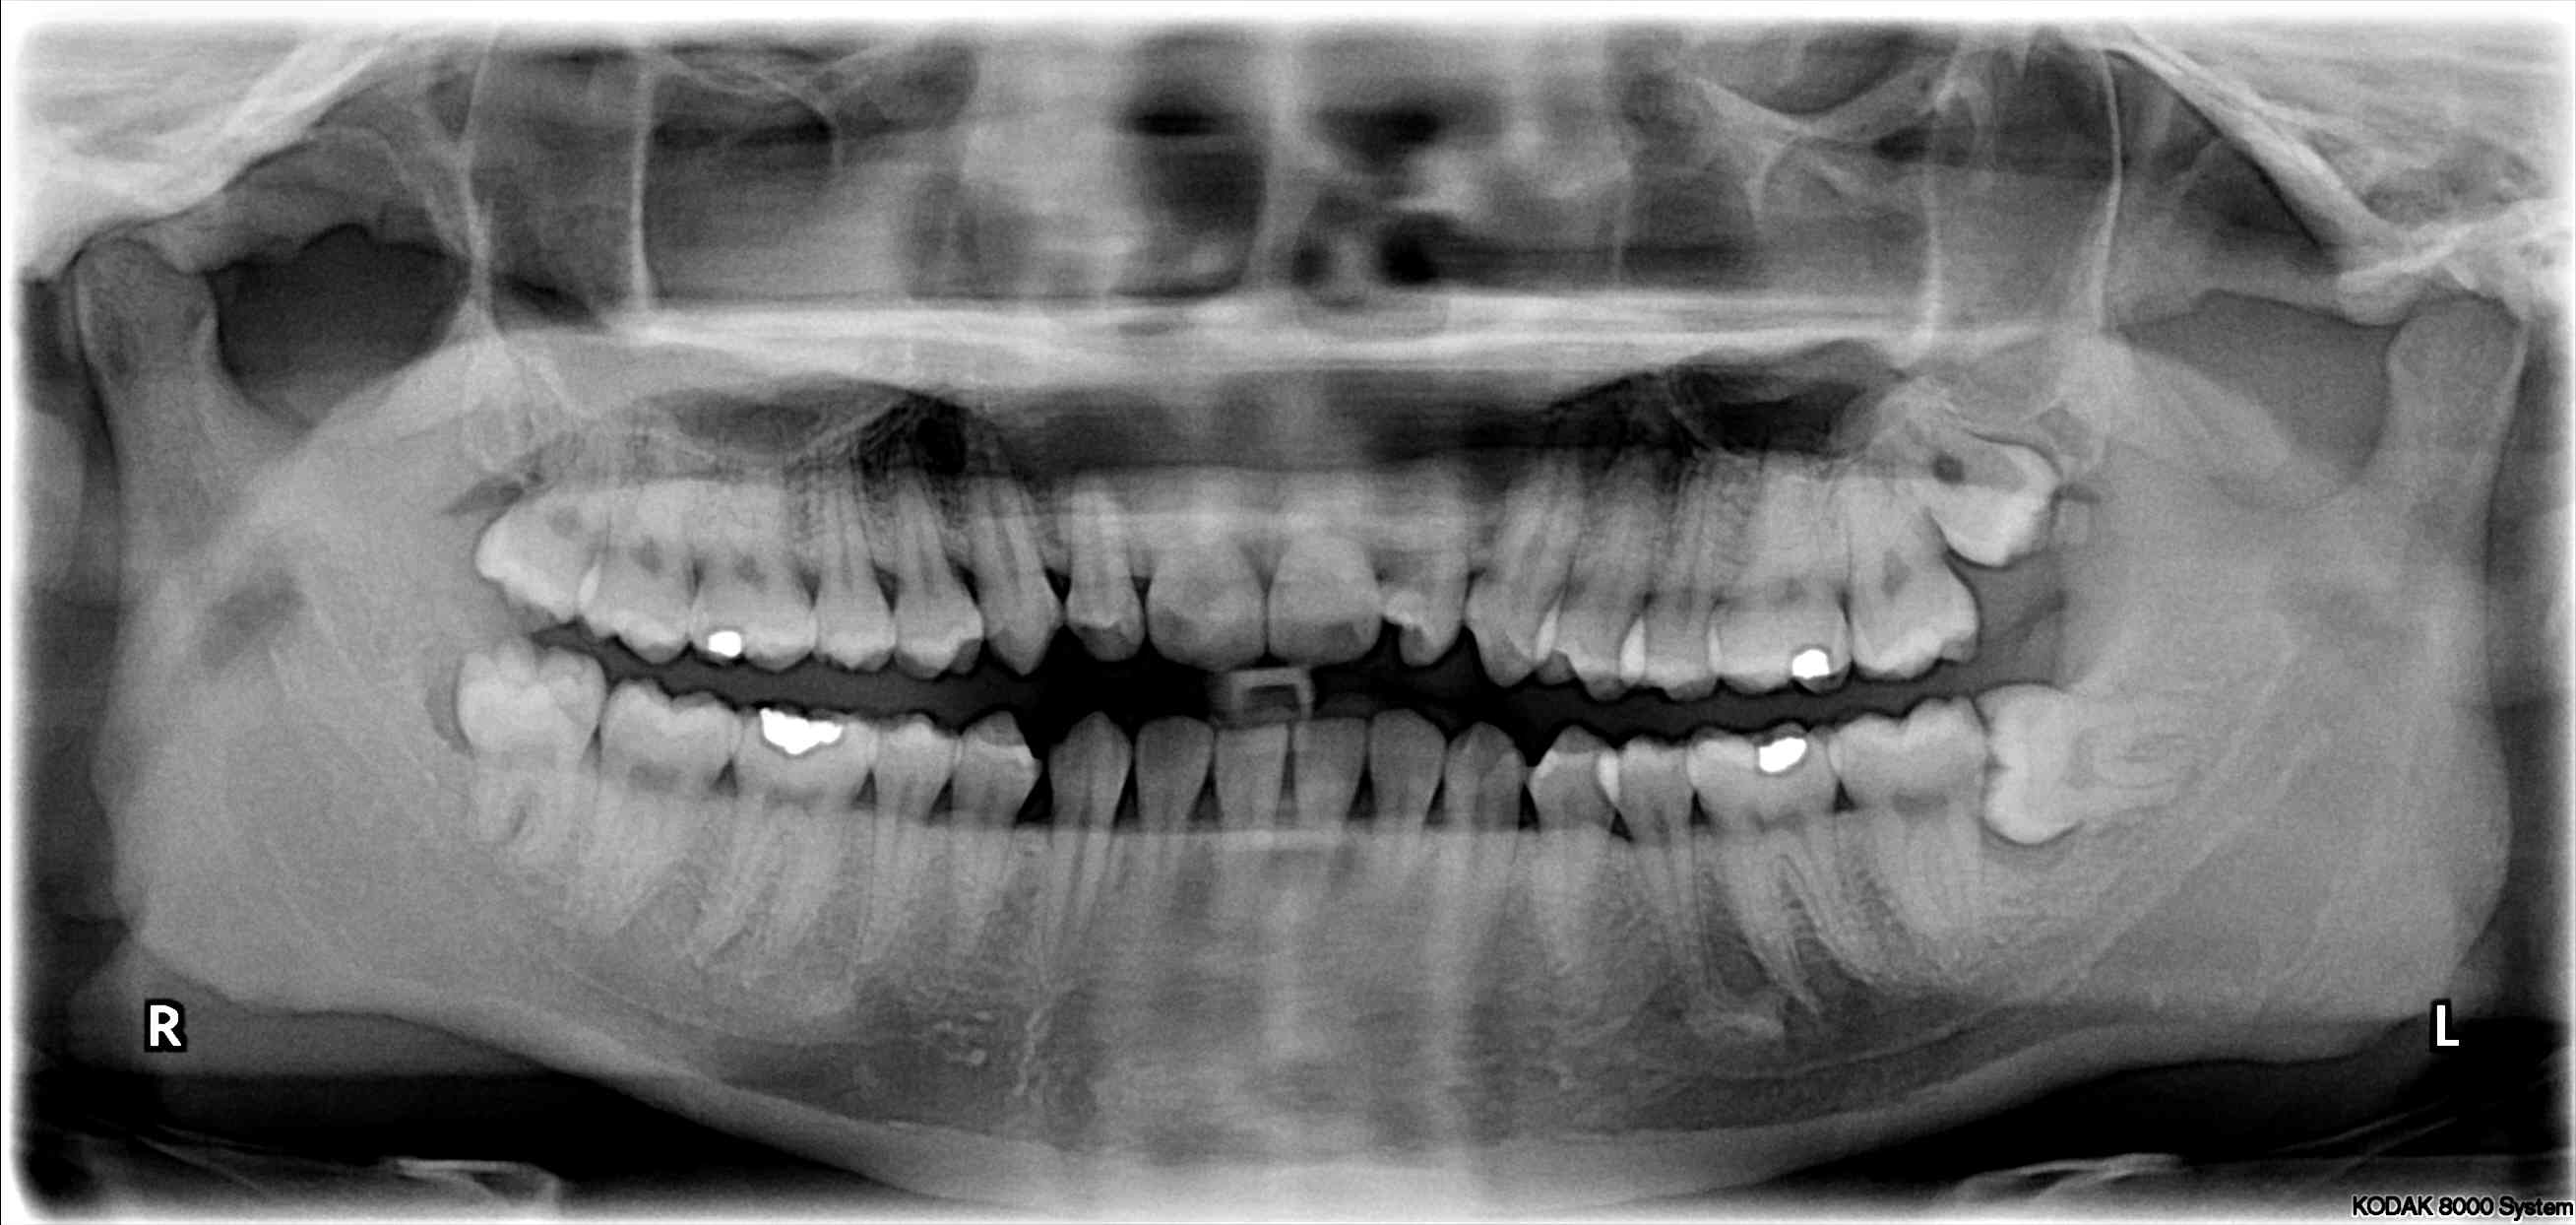 Can Wisdom Teeth Be Explained By Evolution Through Natural Selection